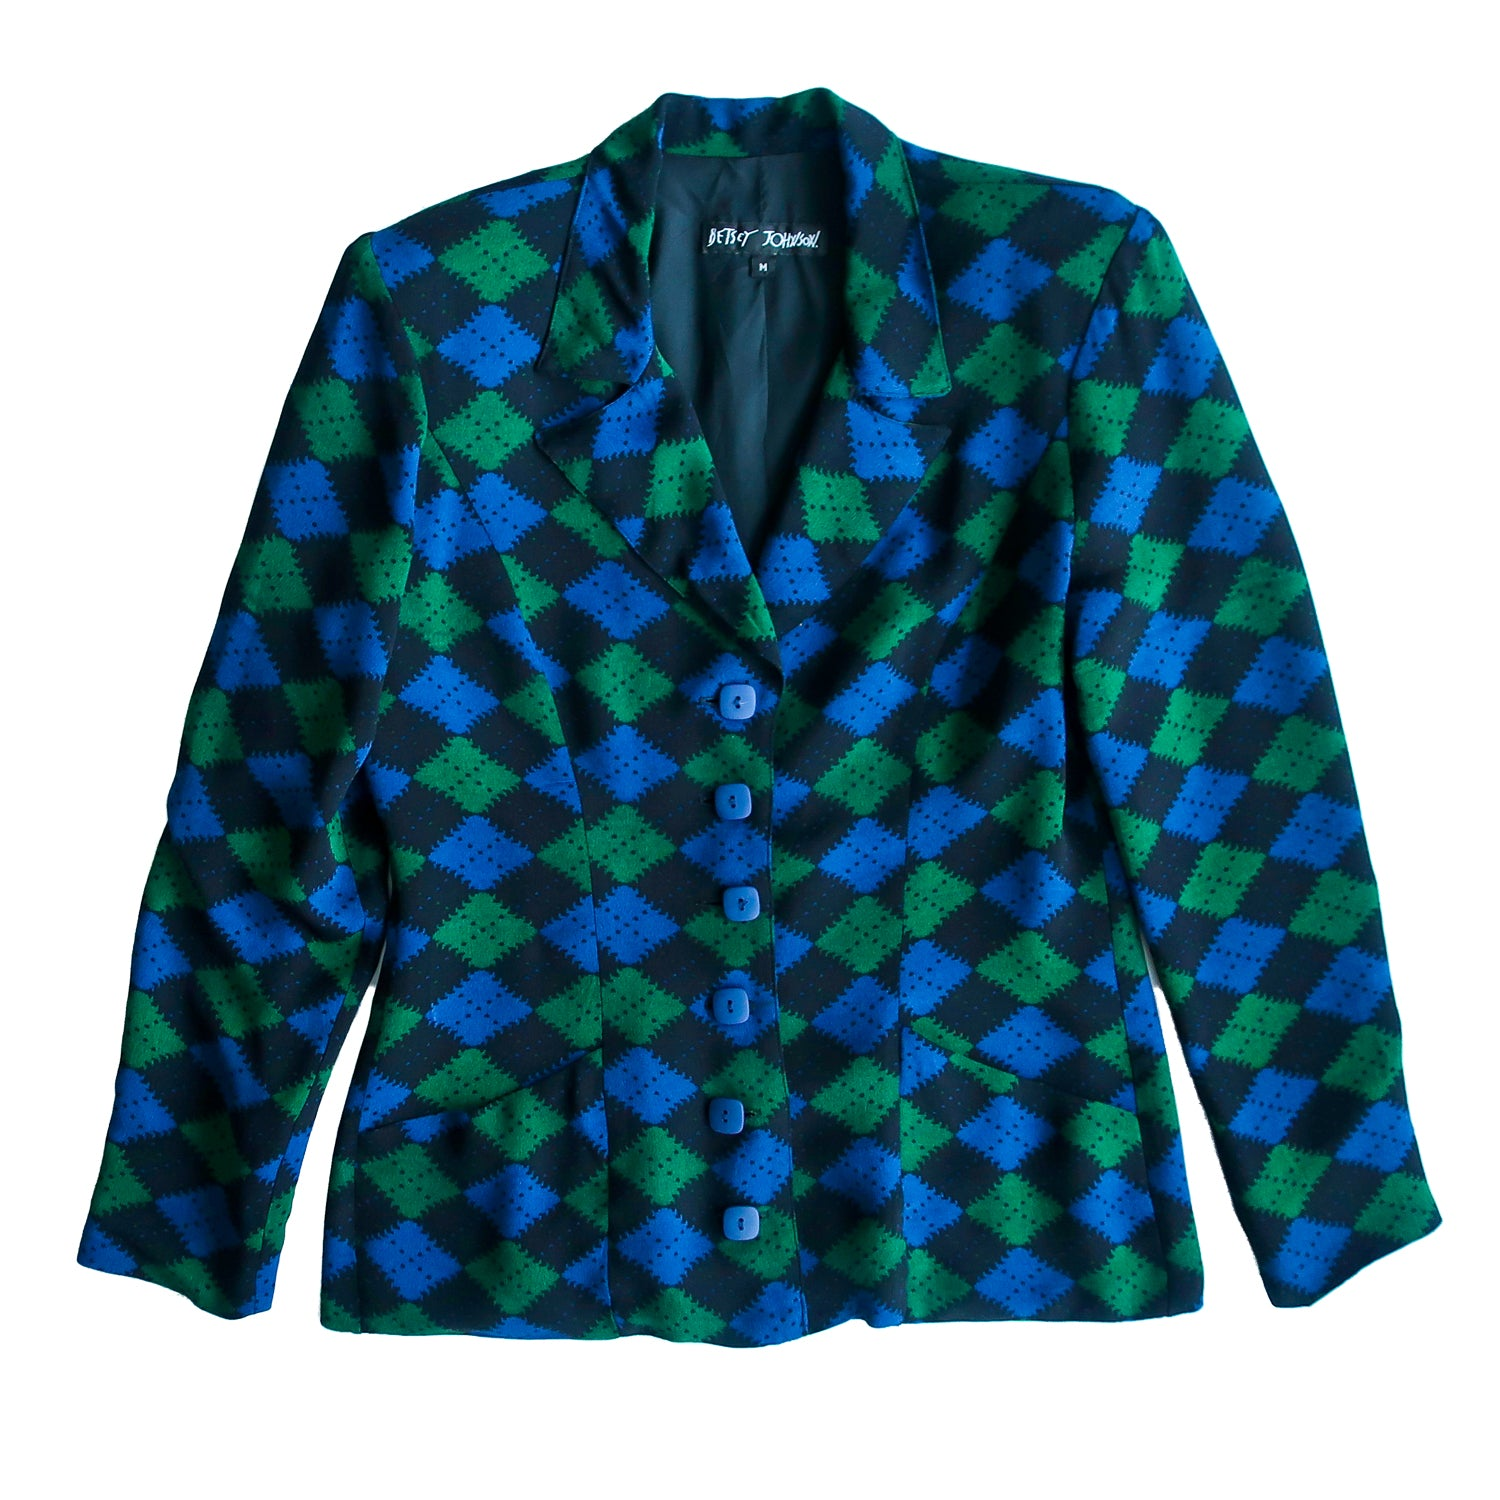 Second Room Shop Vintage. Shop vintage, shop sustainable. Amazing vintage 90s Betsey Johnson, light weight argyle blazer. This jacket has a gorgeous argyle pattern in green, blue and black, with square buttons up the front, and two front pockets. It is fully lined, with shoulder pads, and two decorative buttons at each cuff. This jacket is in perfect condition, and has already been professionally dry cleaned, and is ready to wear. Made in the USA.